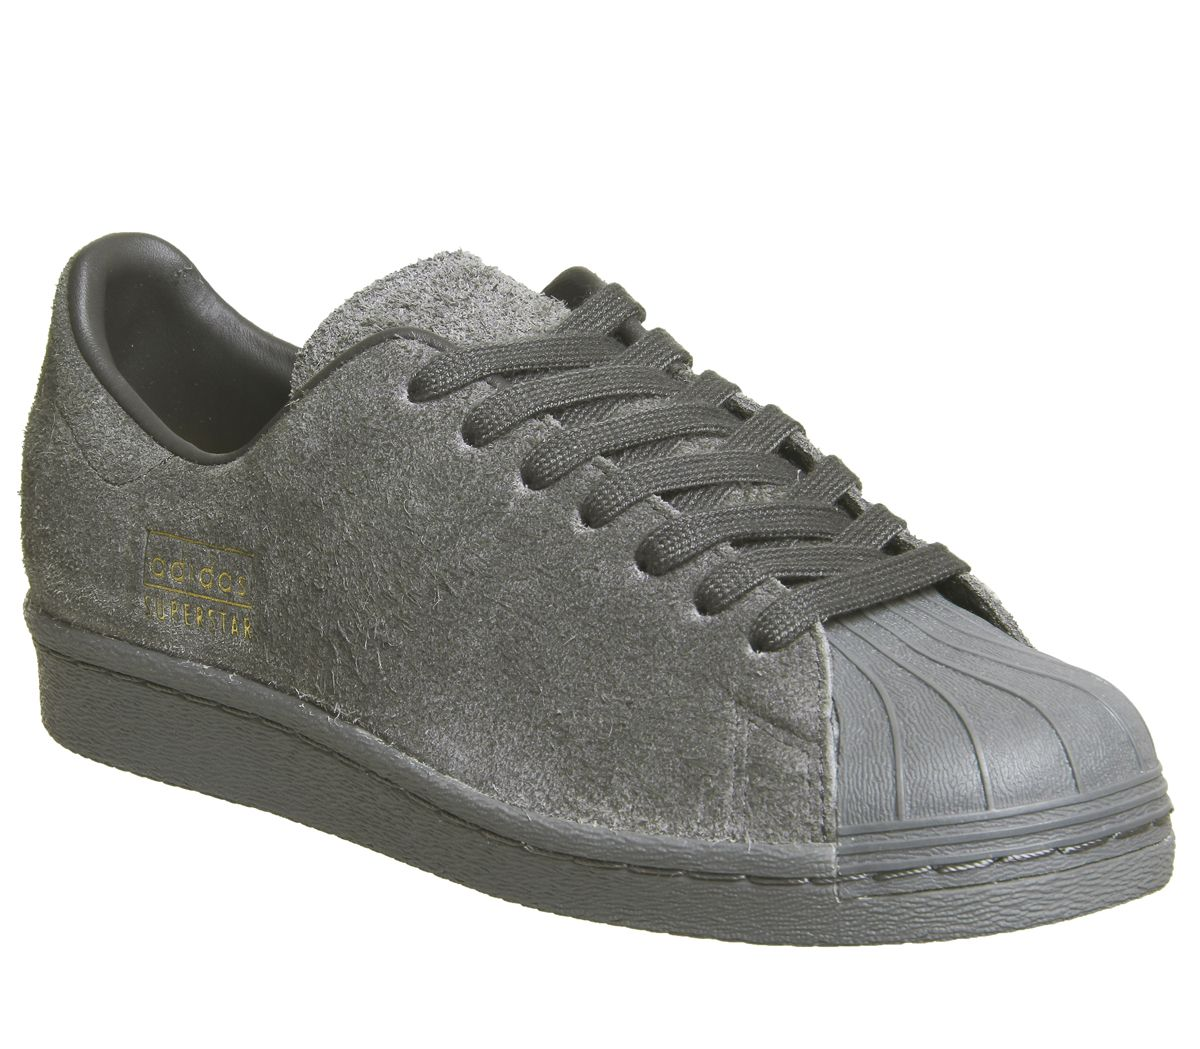 0140311cc115 adidas Superstar 80 s Clean Utility Black - Hers trainers